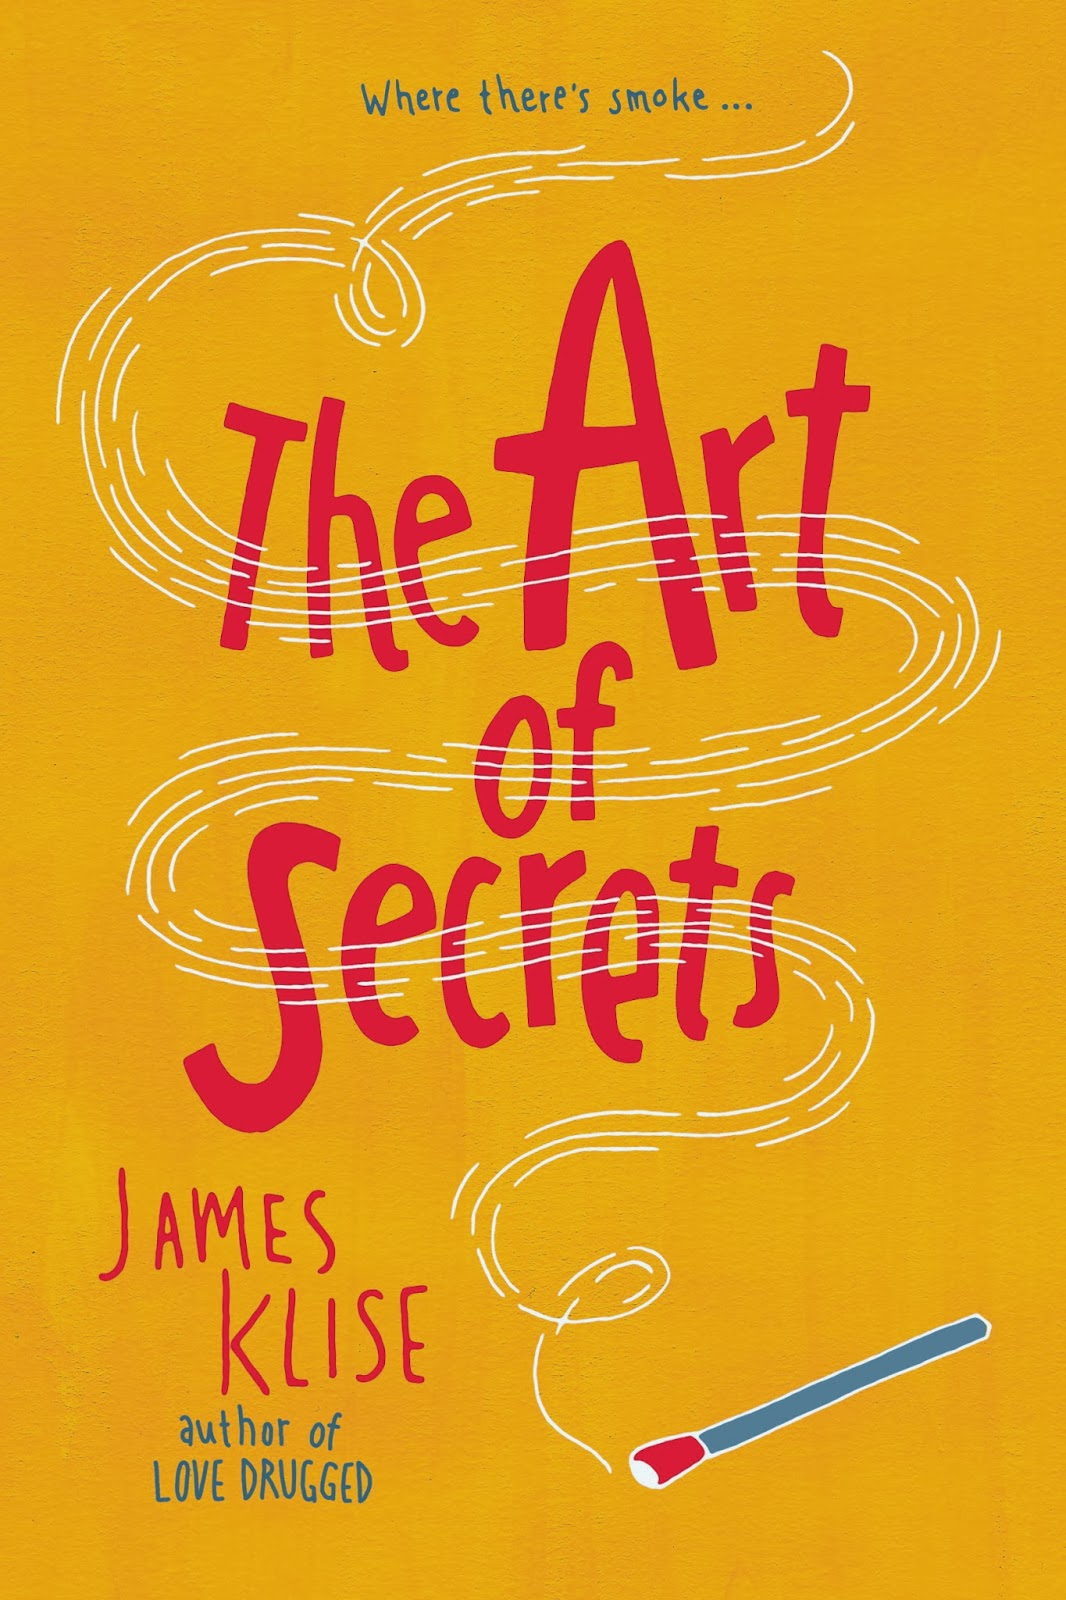 secret book of james pdf